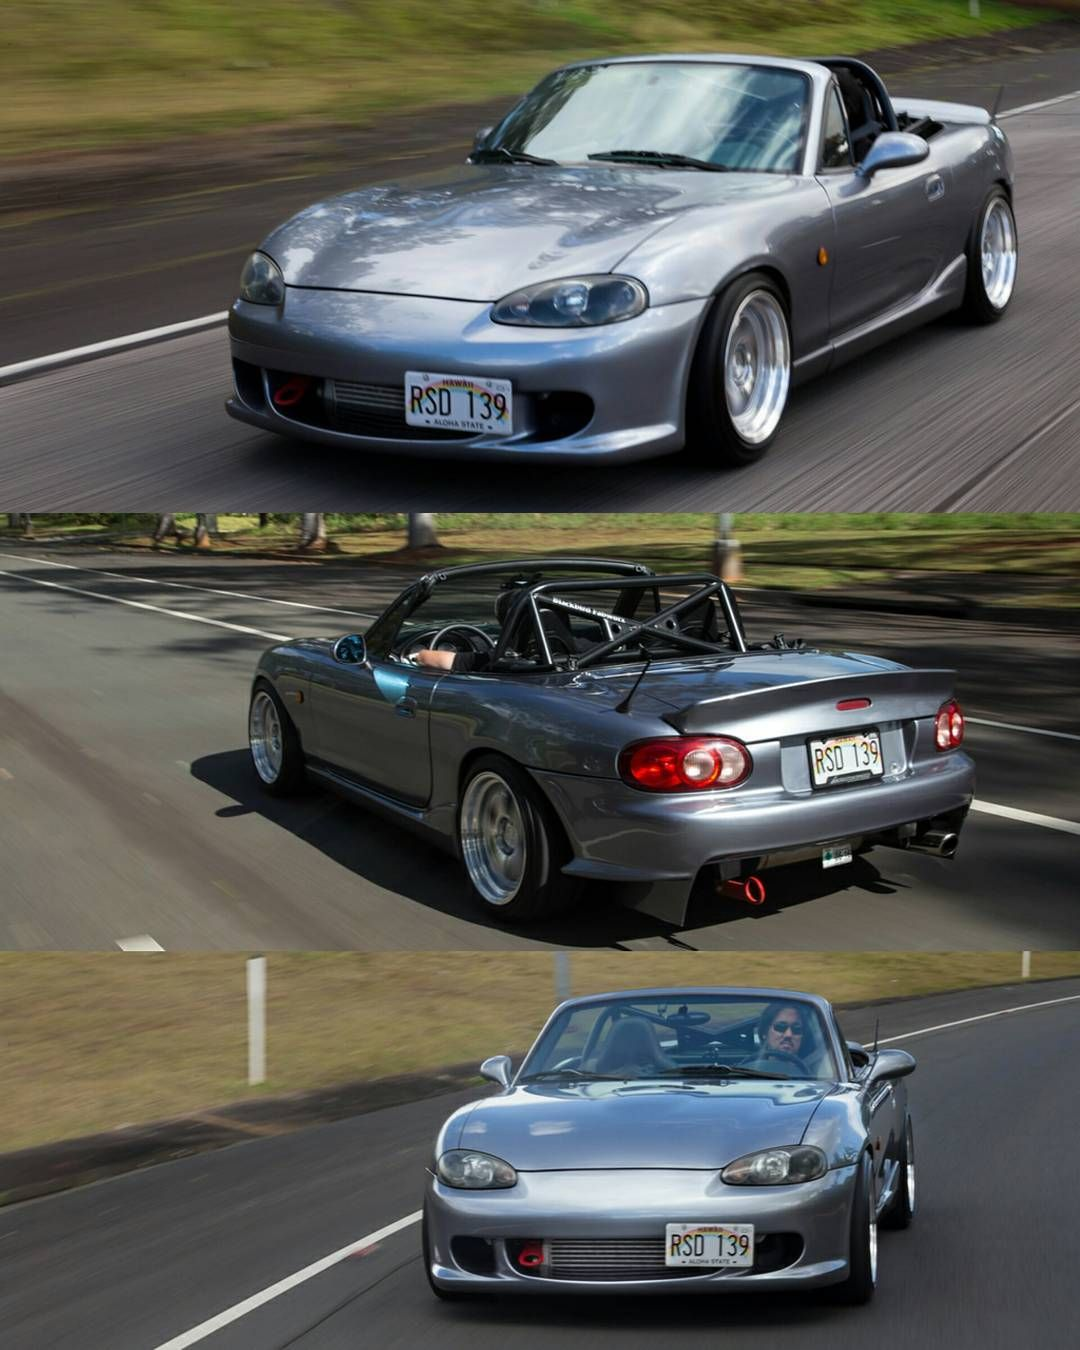 silverfd3s mazdaspeedmiata topmiata hawaii mazda miata miata mx5 eunos. Black Bedroom Furniture Sets. Home Design Ideas